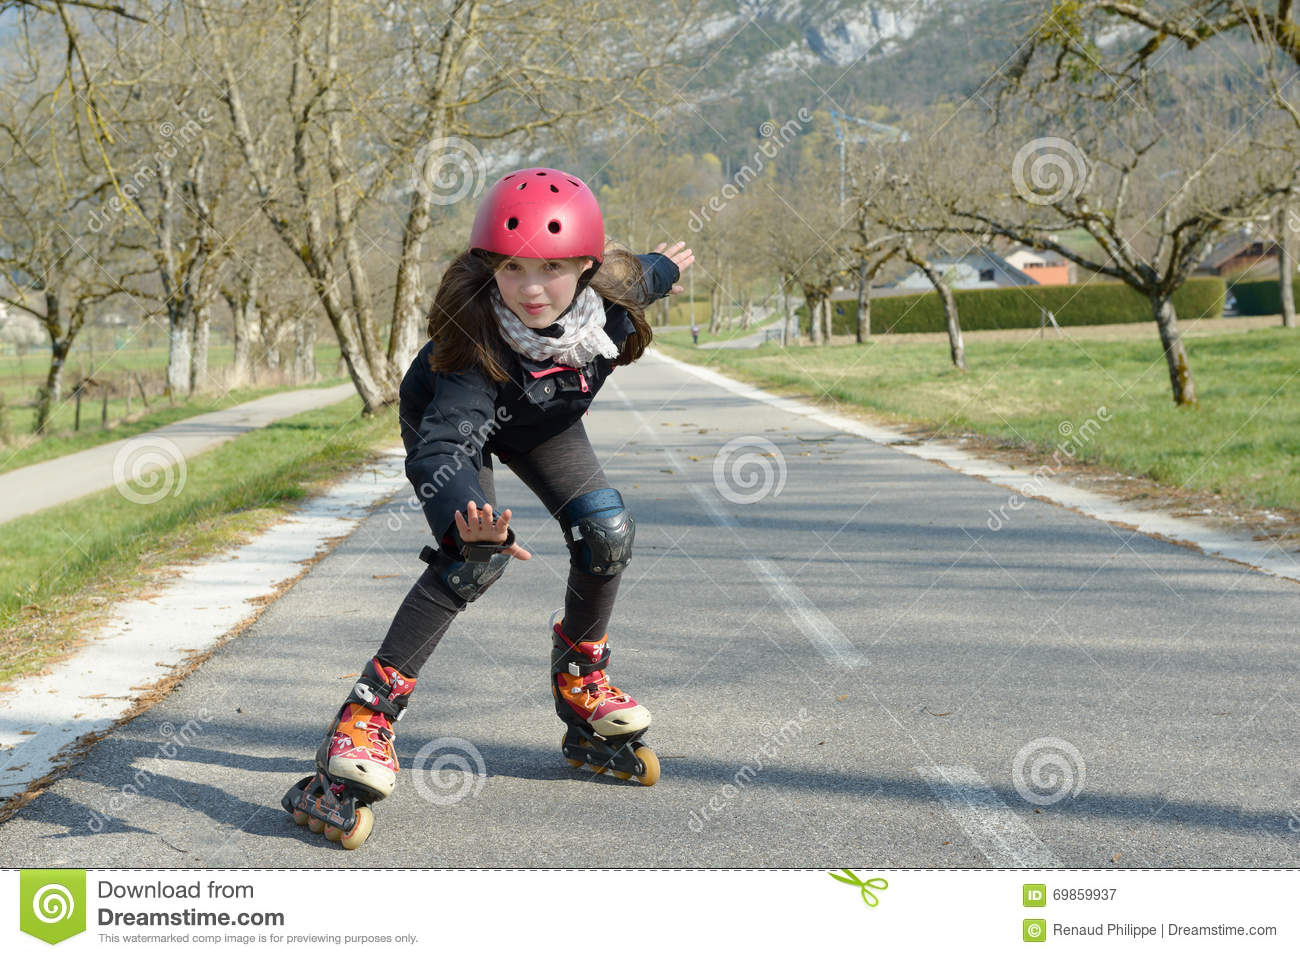 Woman Roller Skating Sport Activity In Park Royalty Free